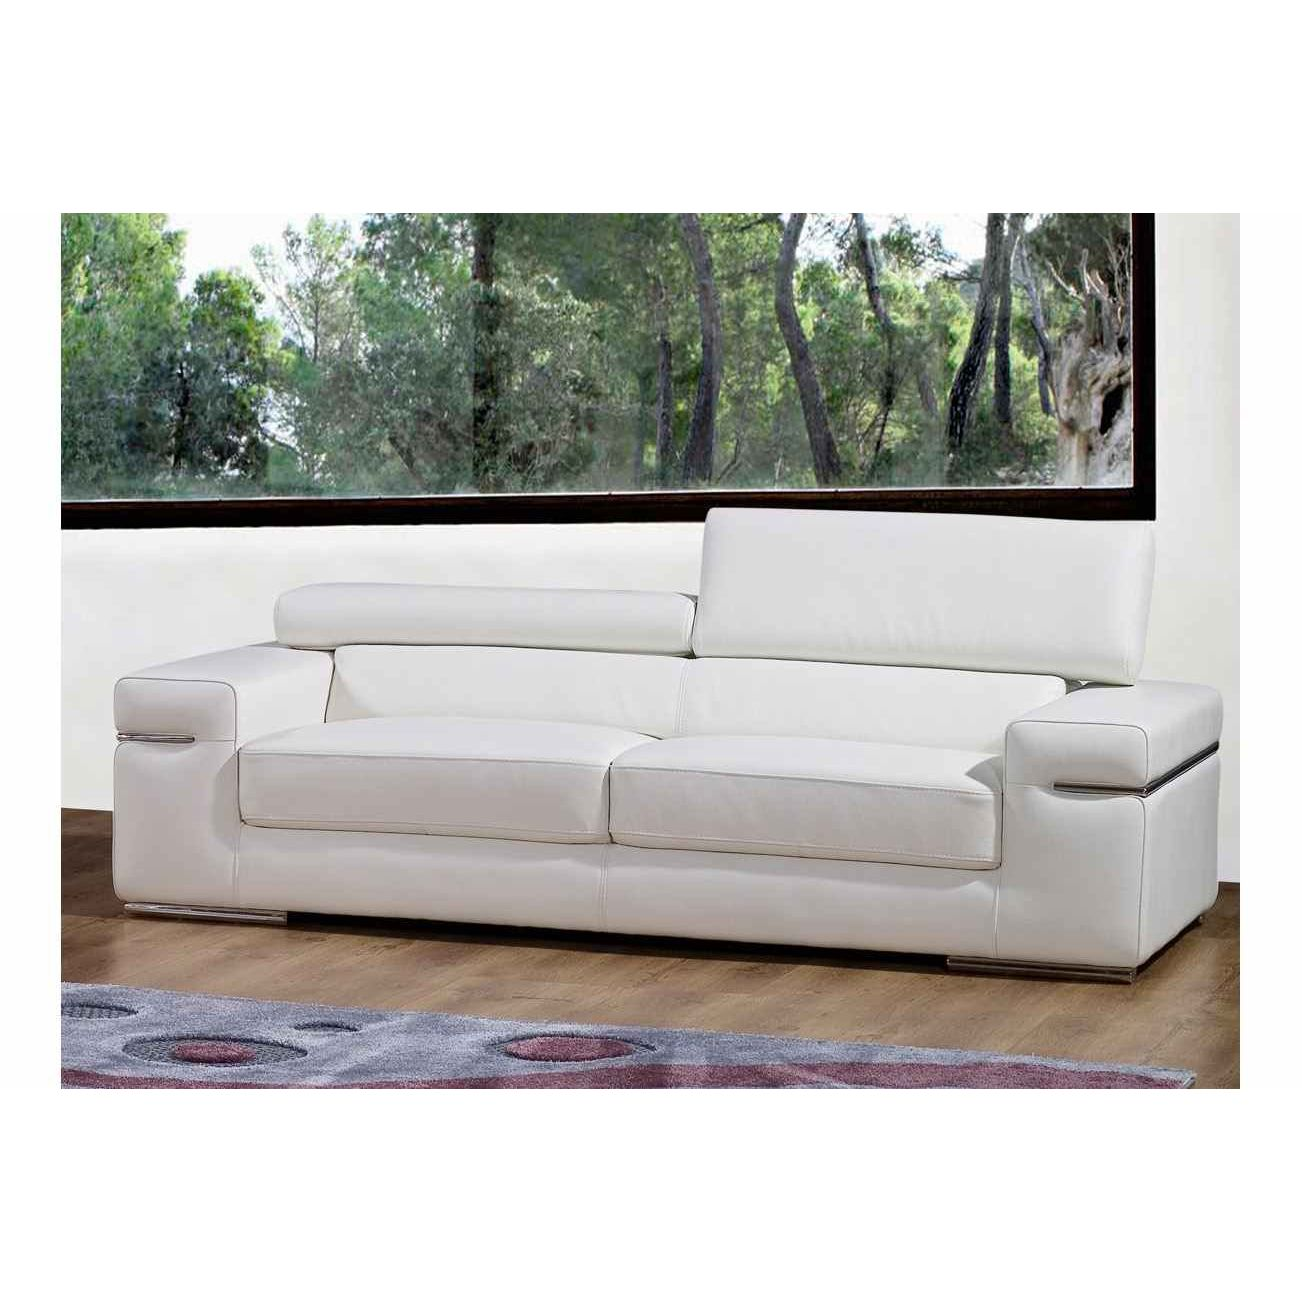 Deco in paris canape 3 places en cuir blanc thomas can - Canape convertible cuir 3 places ...